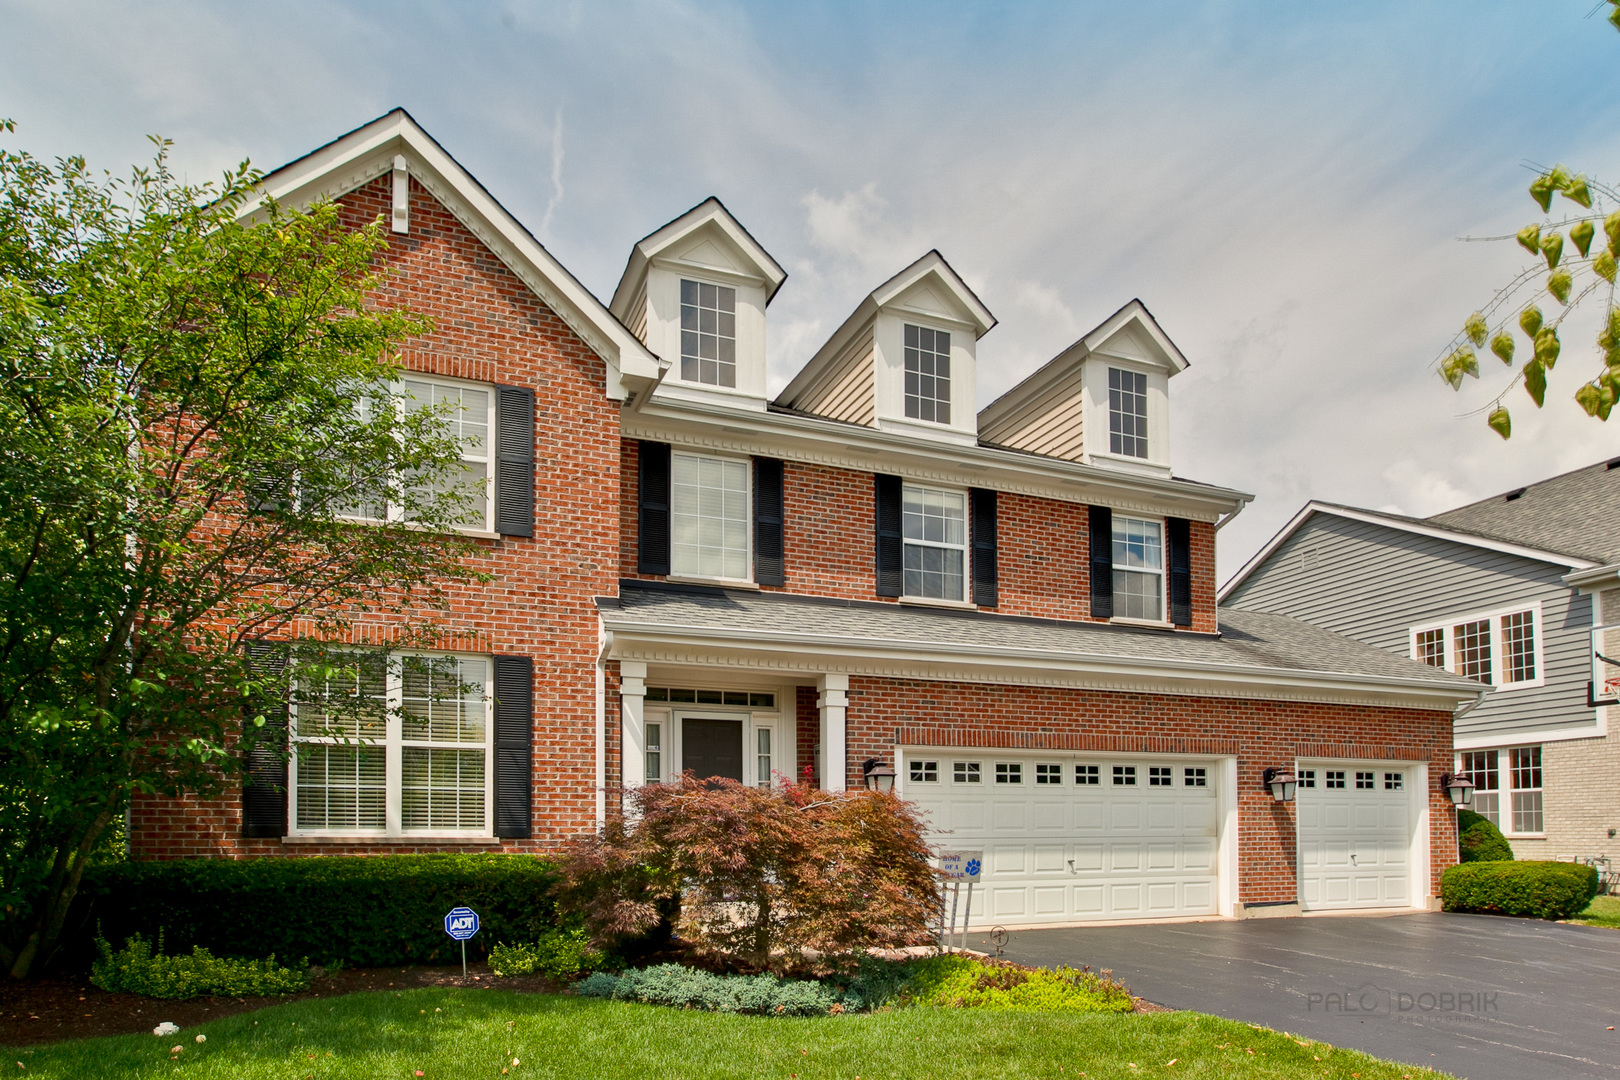 vernon hills Find vernon hills, il condos & townhomes for sale with coldwell banker residential brokerage.